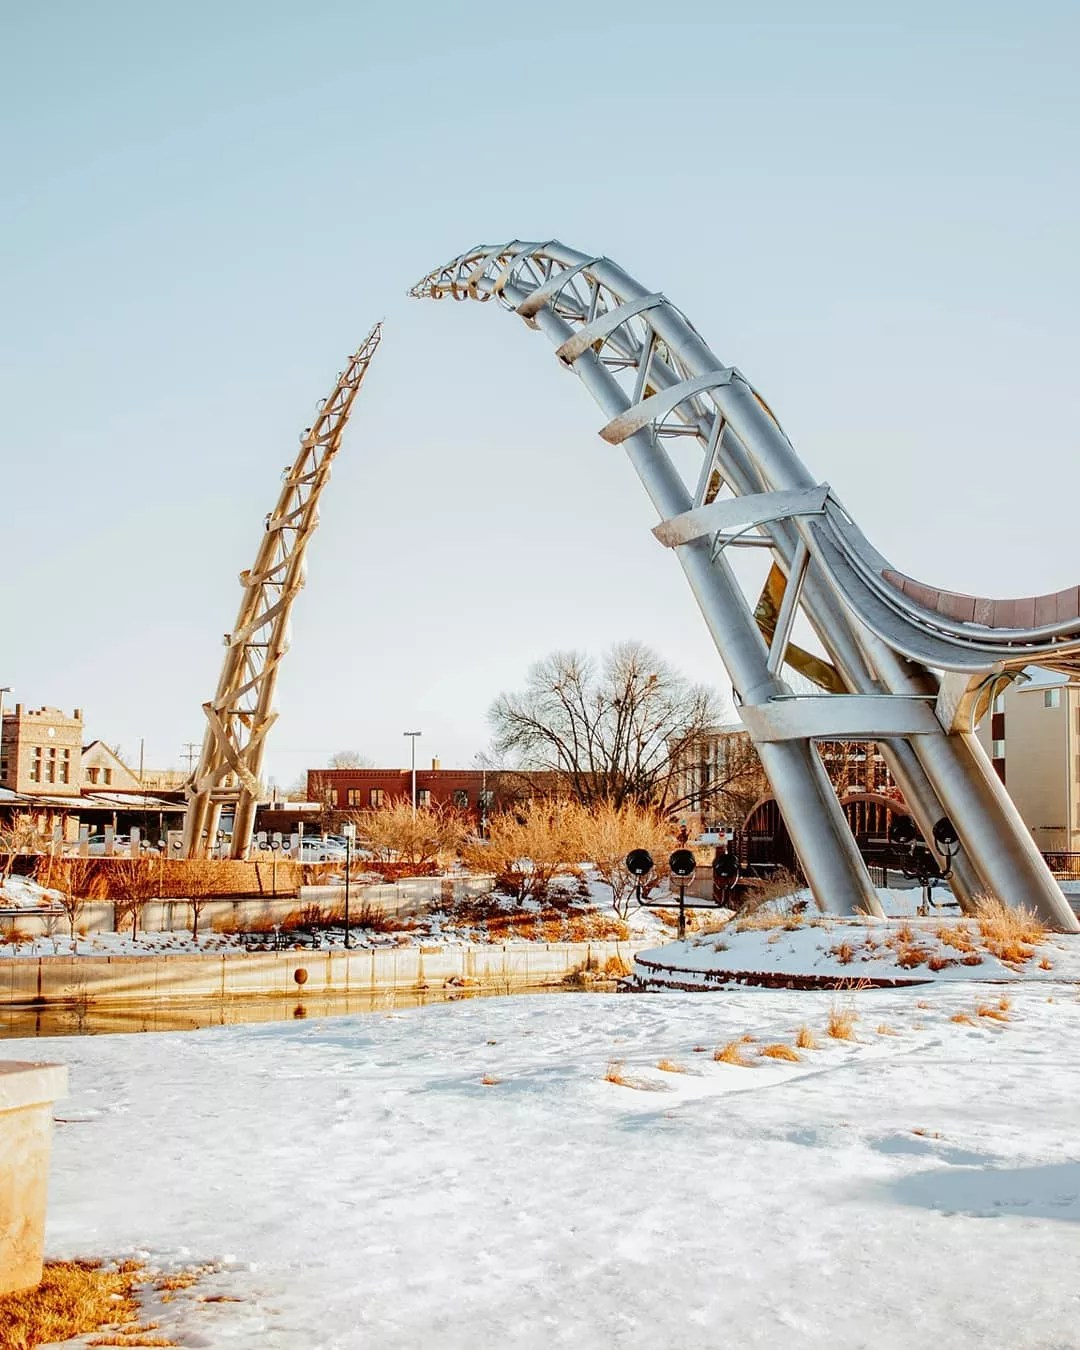 Arc of Dreams in Sioux Falls, SD photo by Instagram user @meditatetoelavate